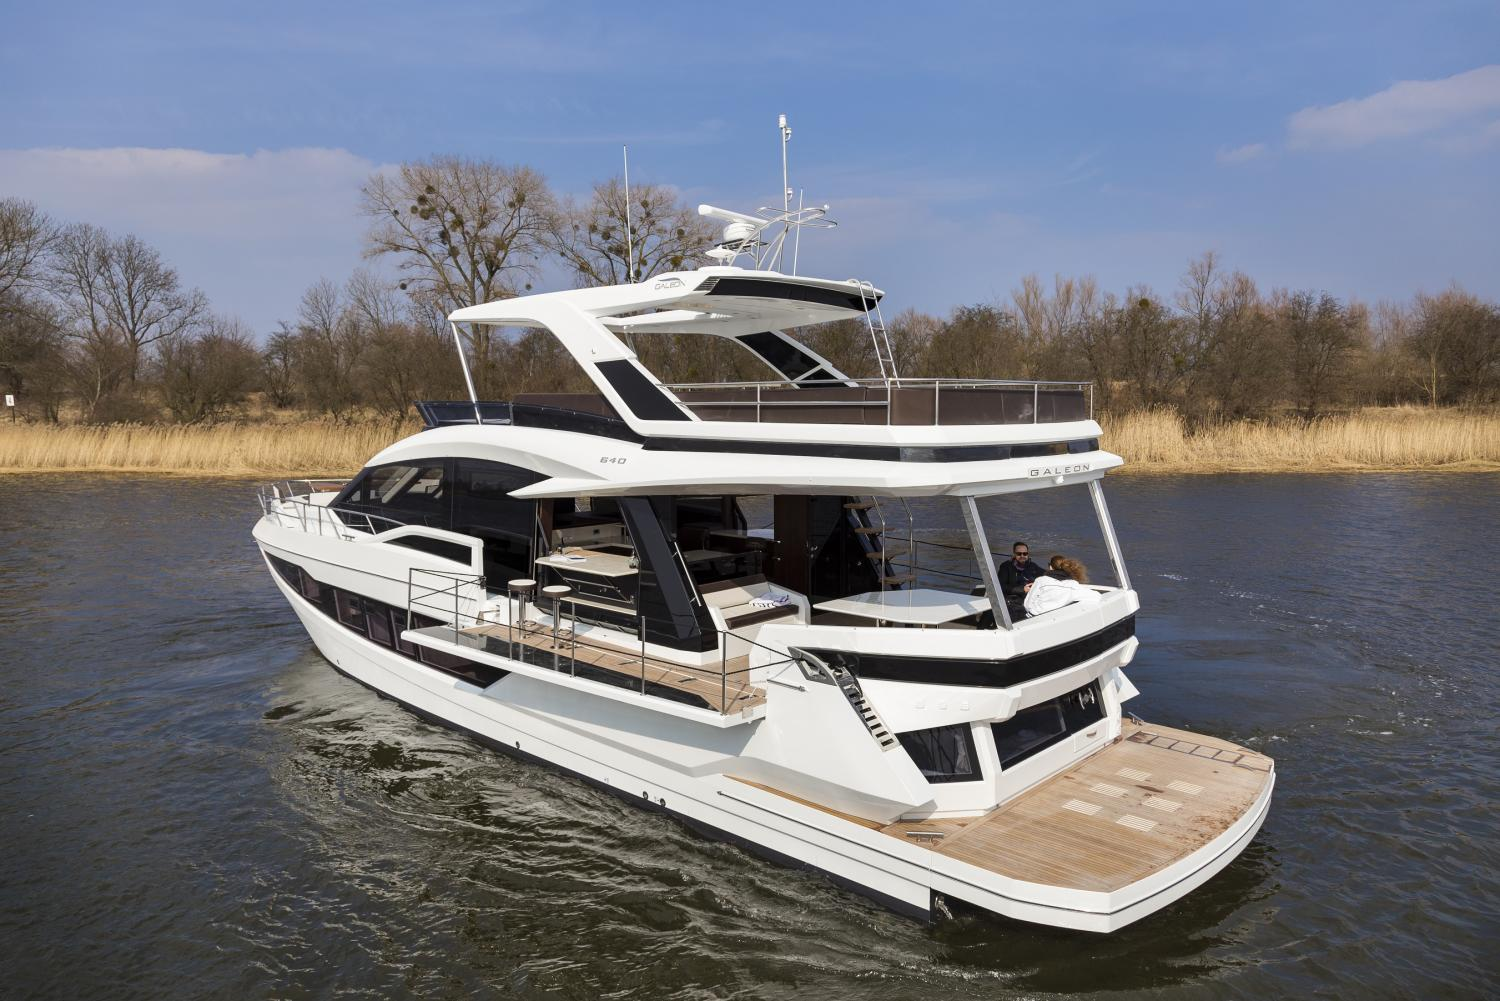 Image 3 for Next Generation Galeon Models Splash Down Under & QLD Open Weekends Winter 2020